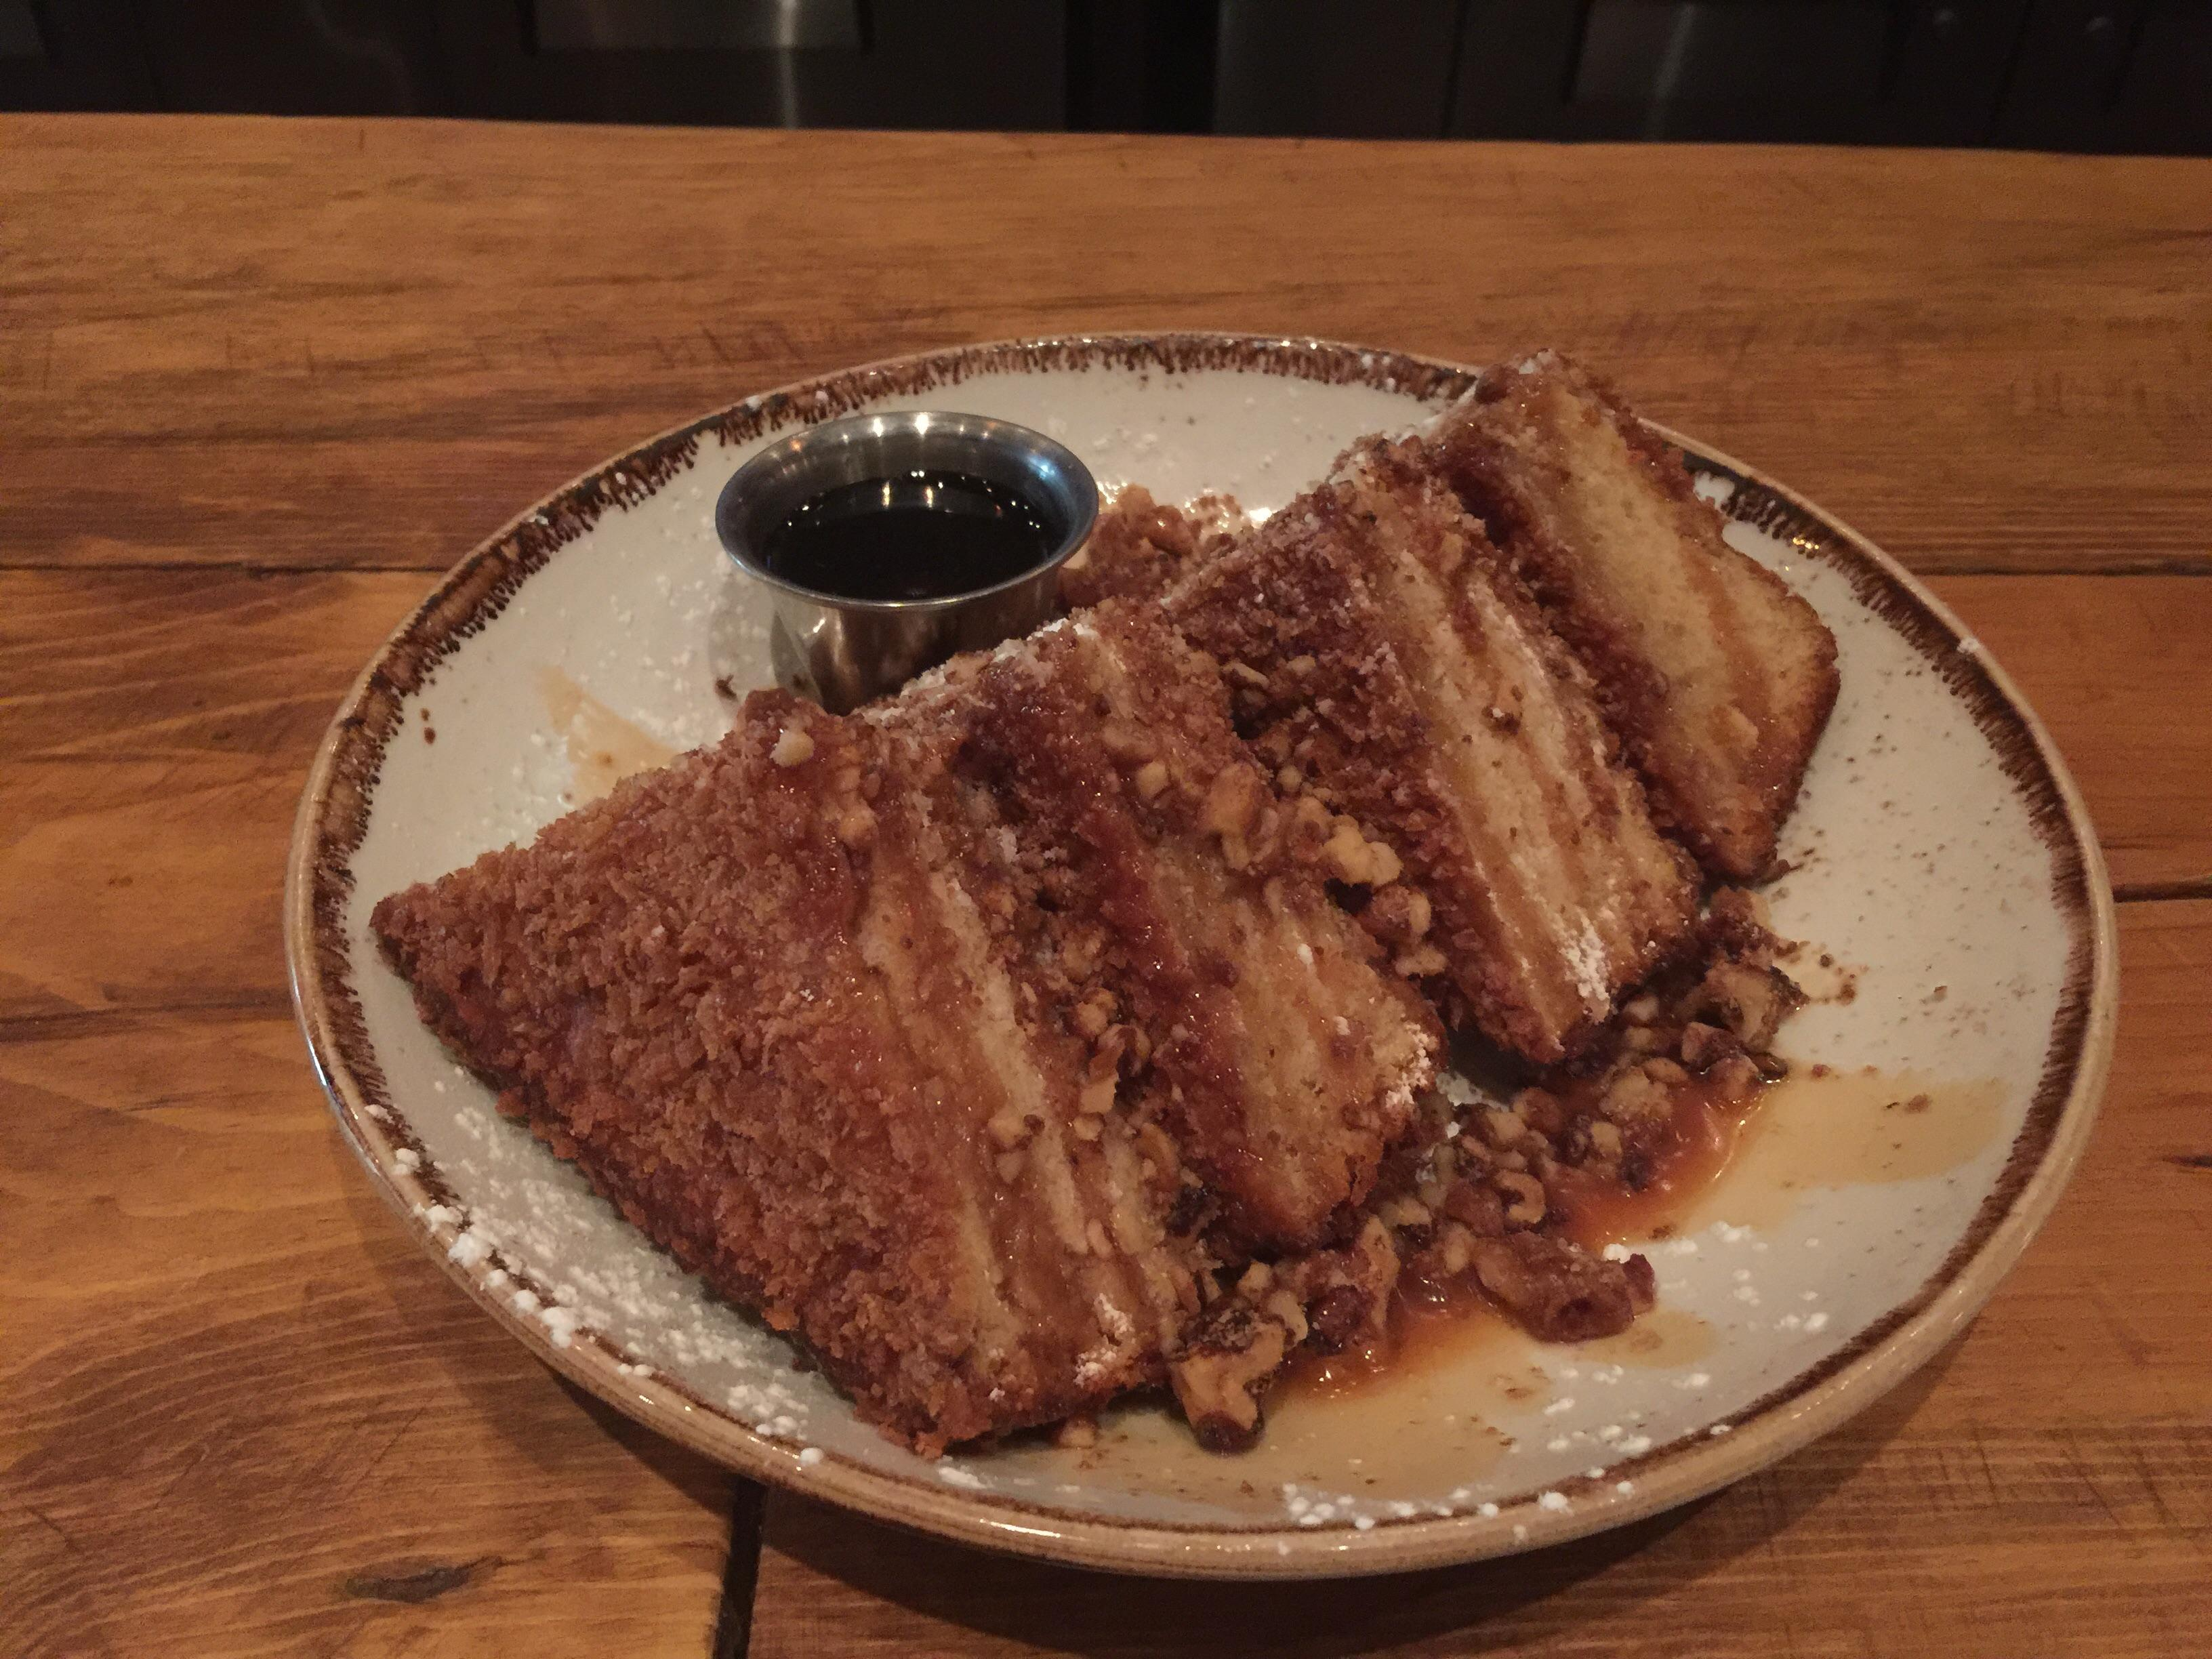 Crispy French toast at Stonewood #food $7 large slices topped with pecans